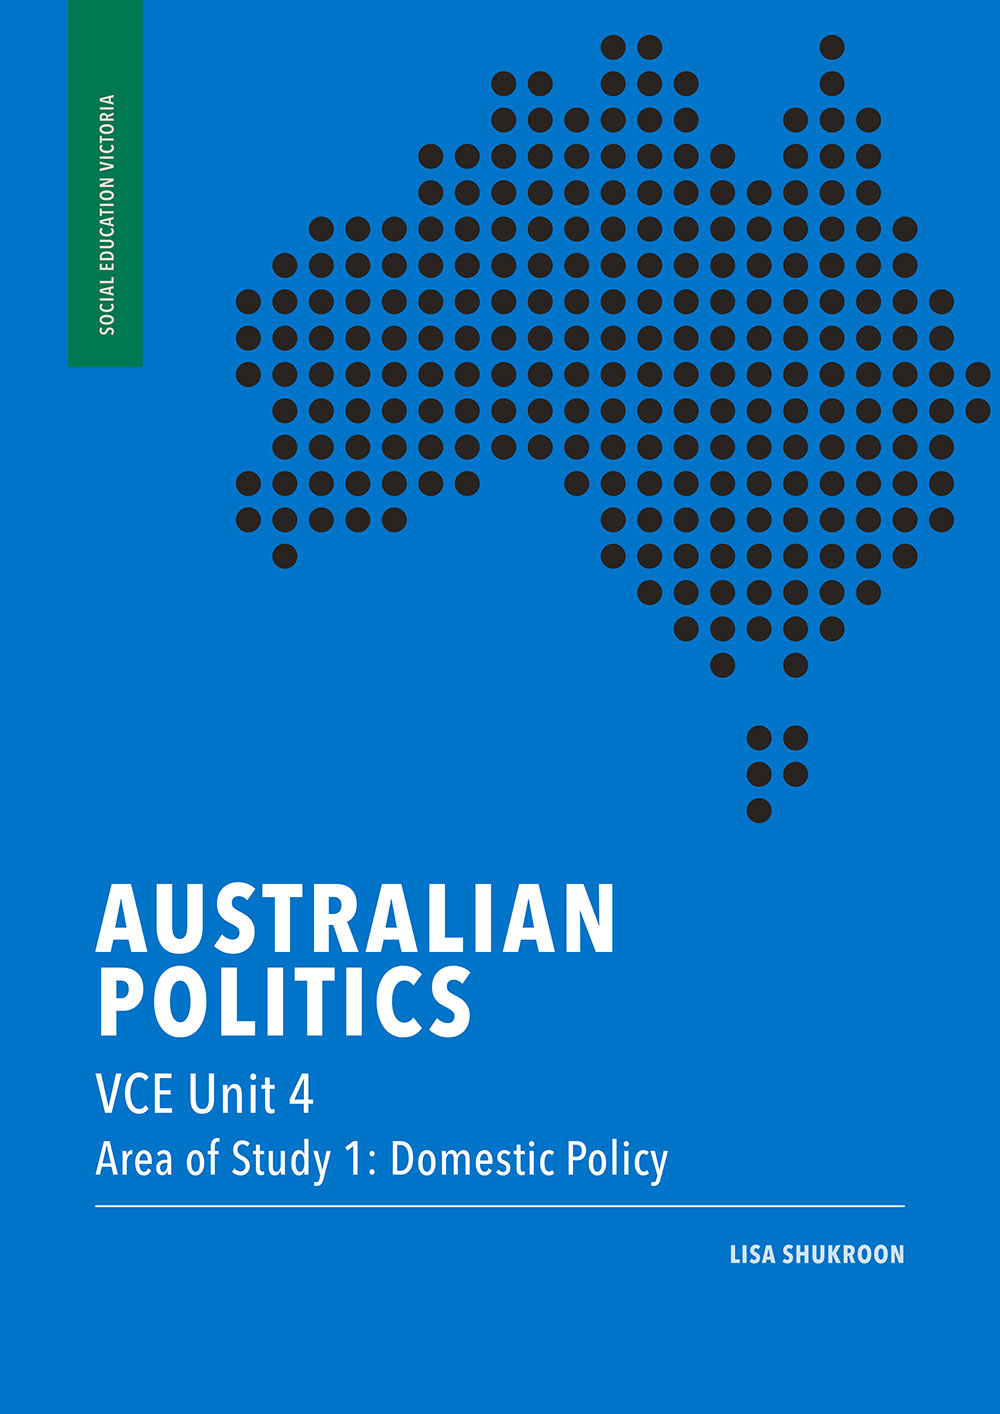 Australian Politics VCE Unit 4, Area of Study 1